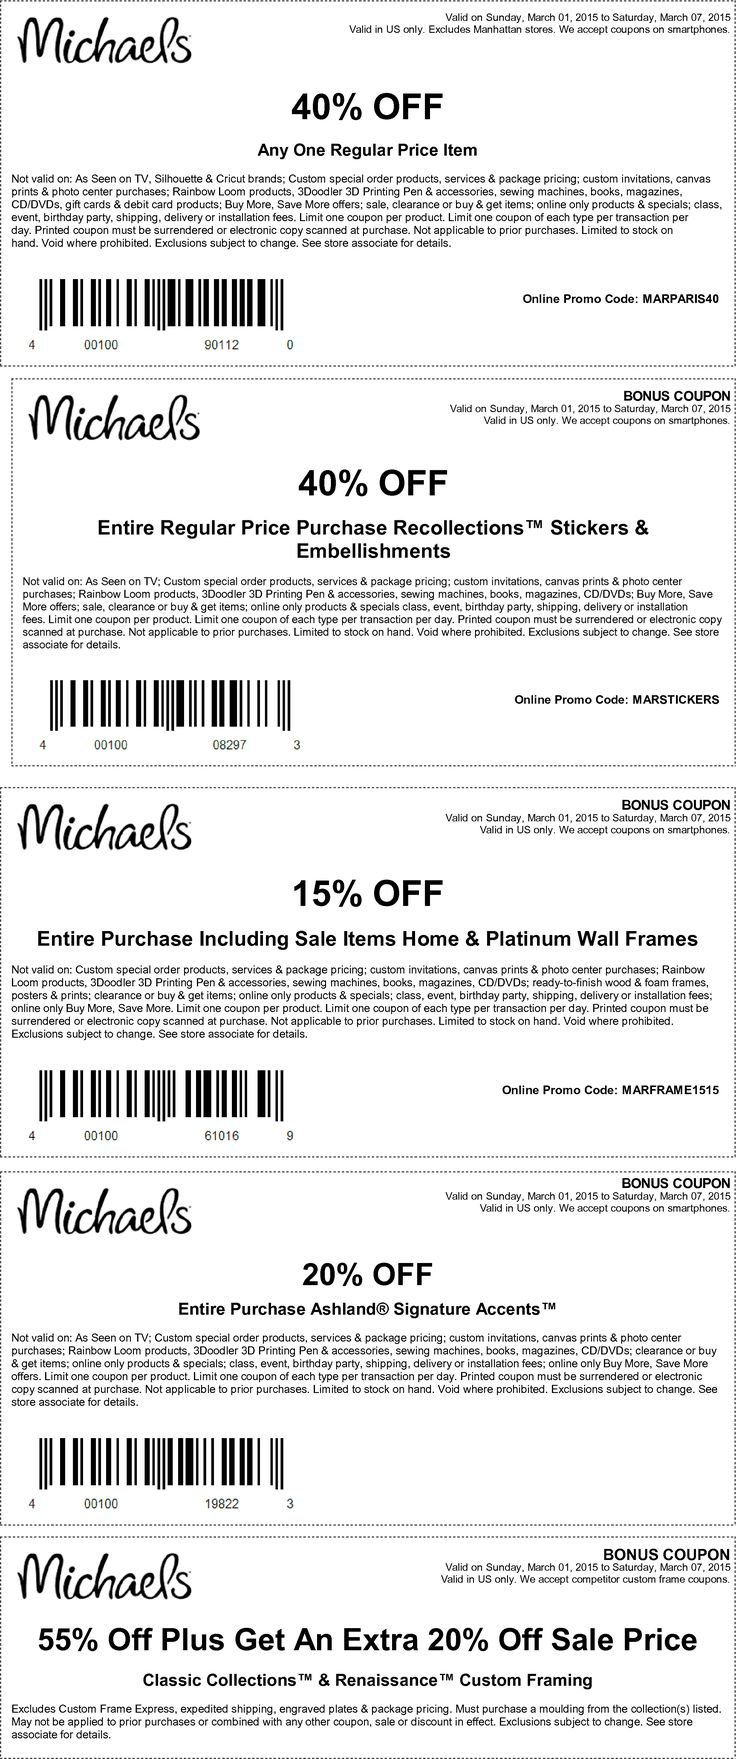 How can you save money with printable hibbett sports coupons 10 - Find This Pin And More On Coupons By Janamajors